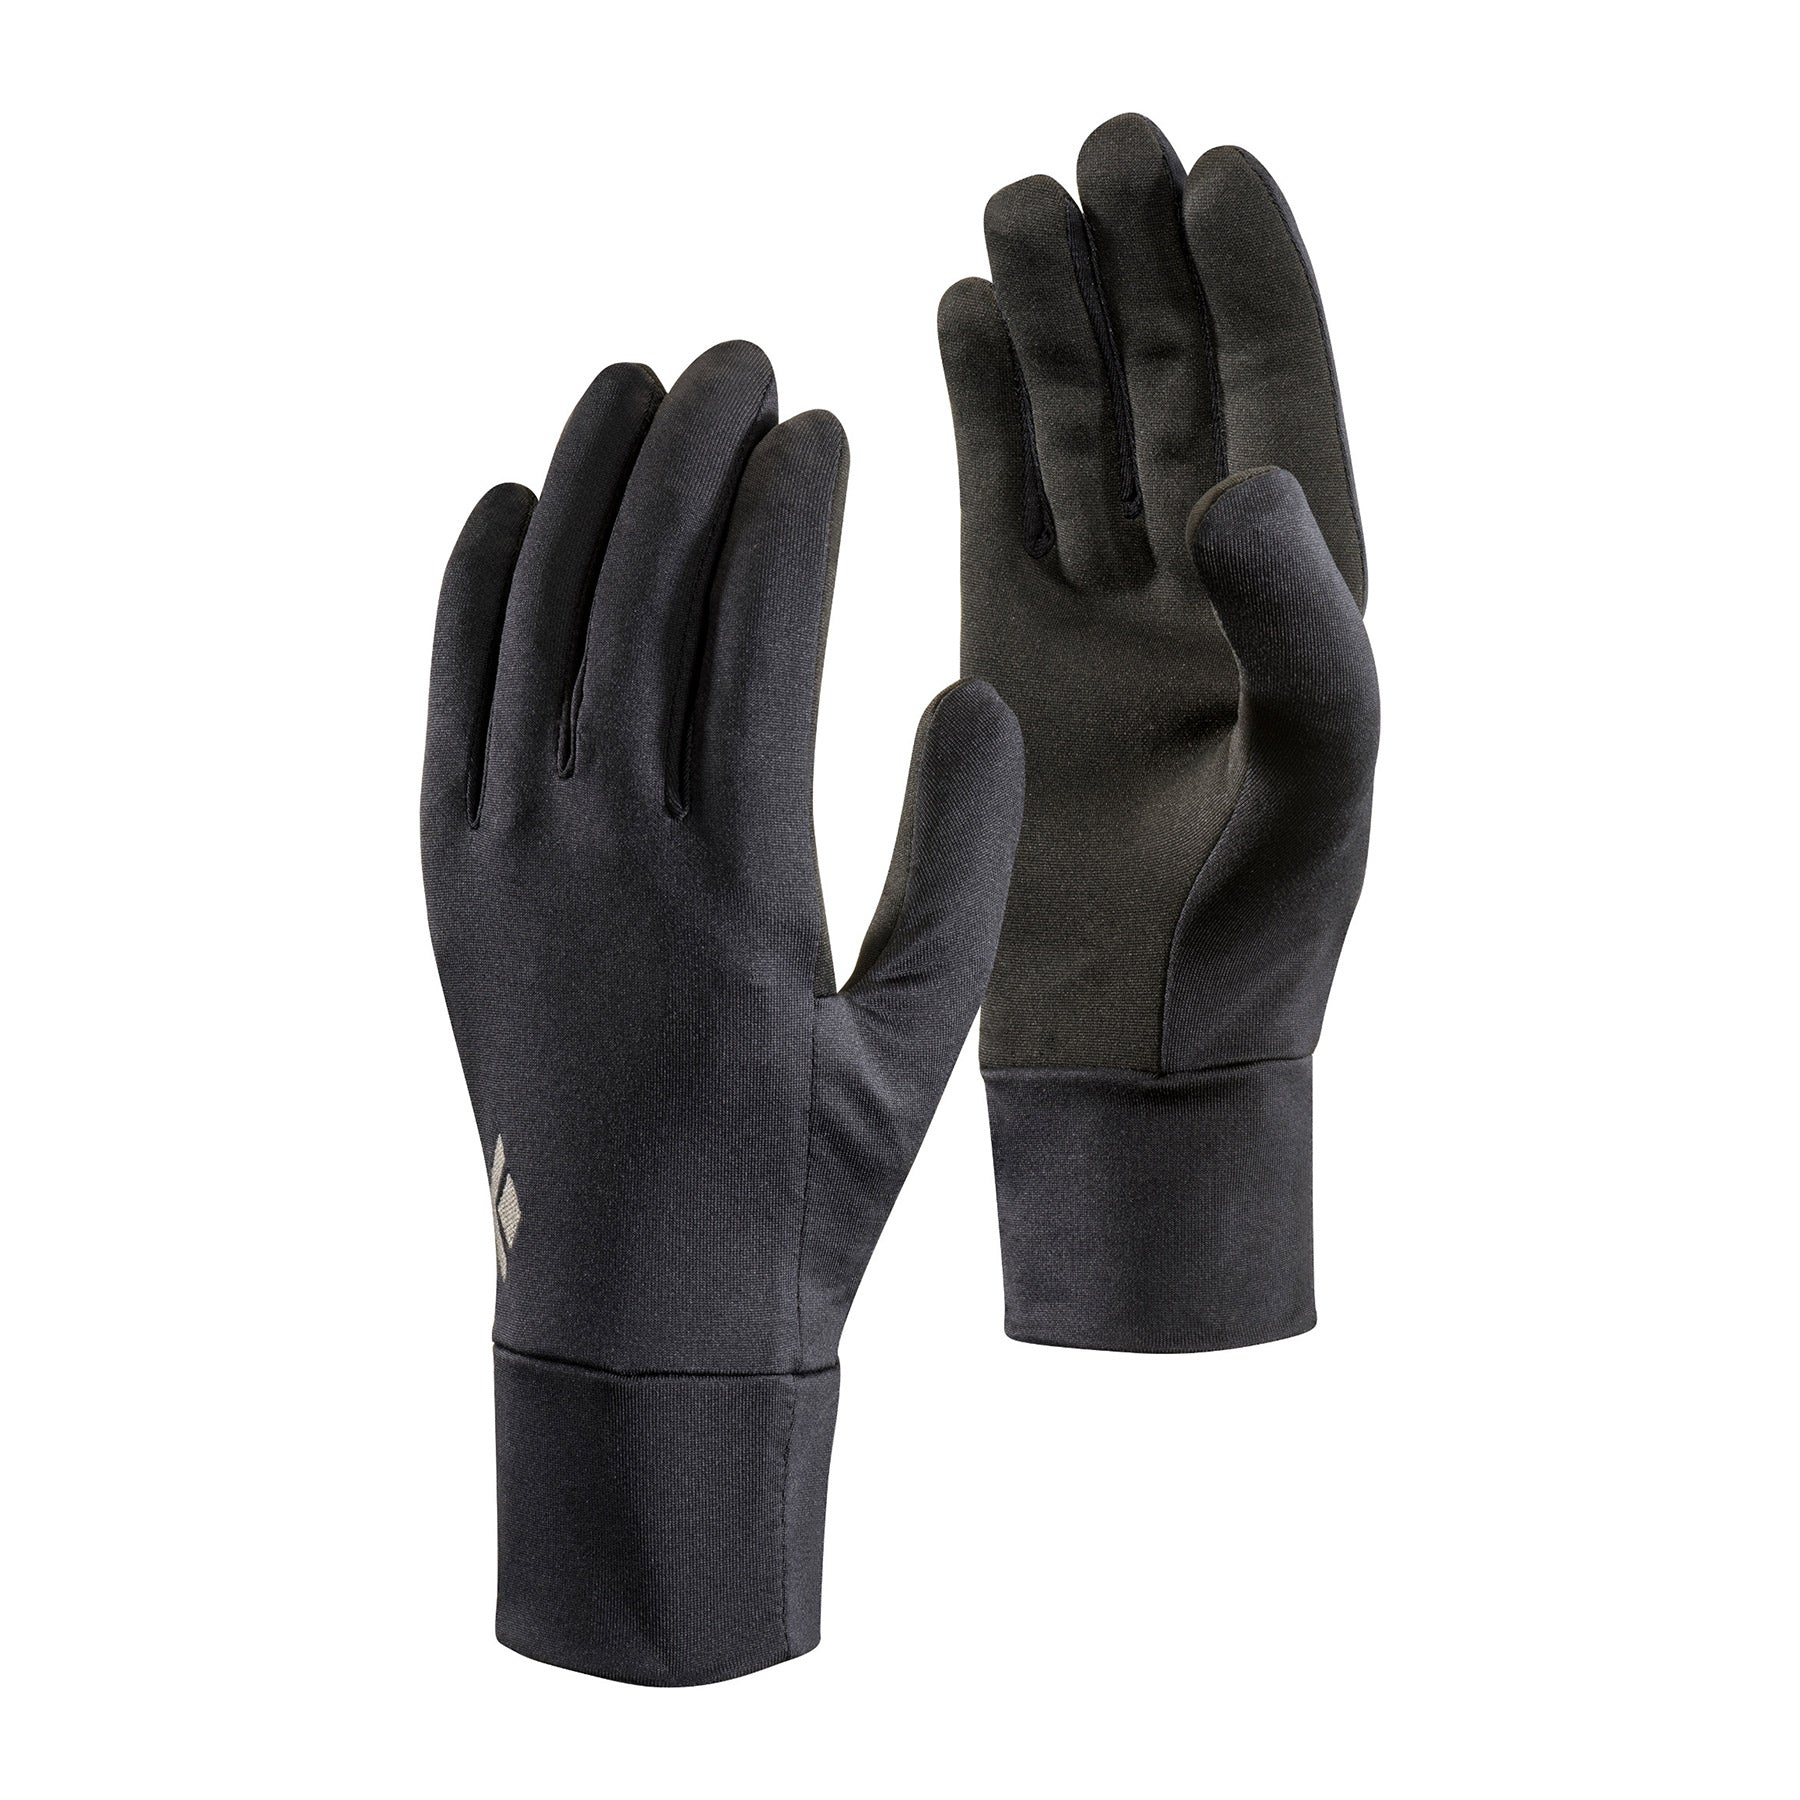 a lightweight pair of black gloves